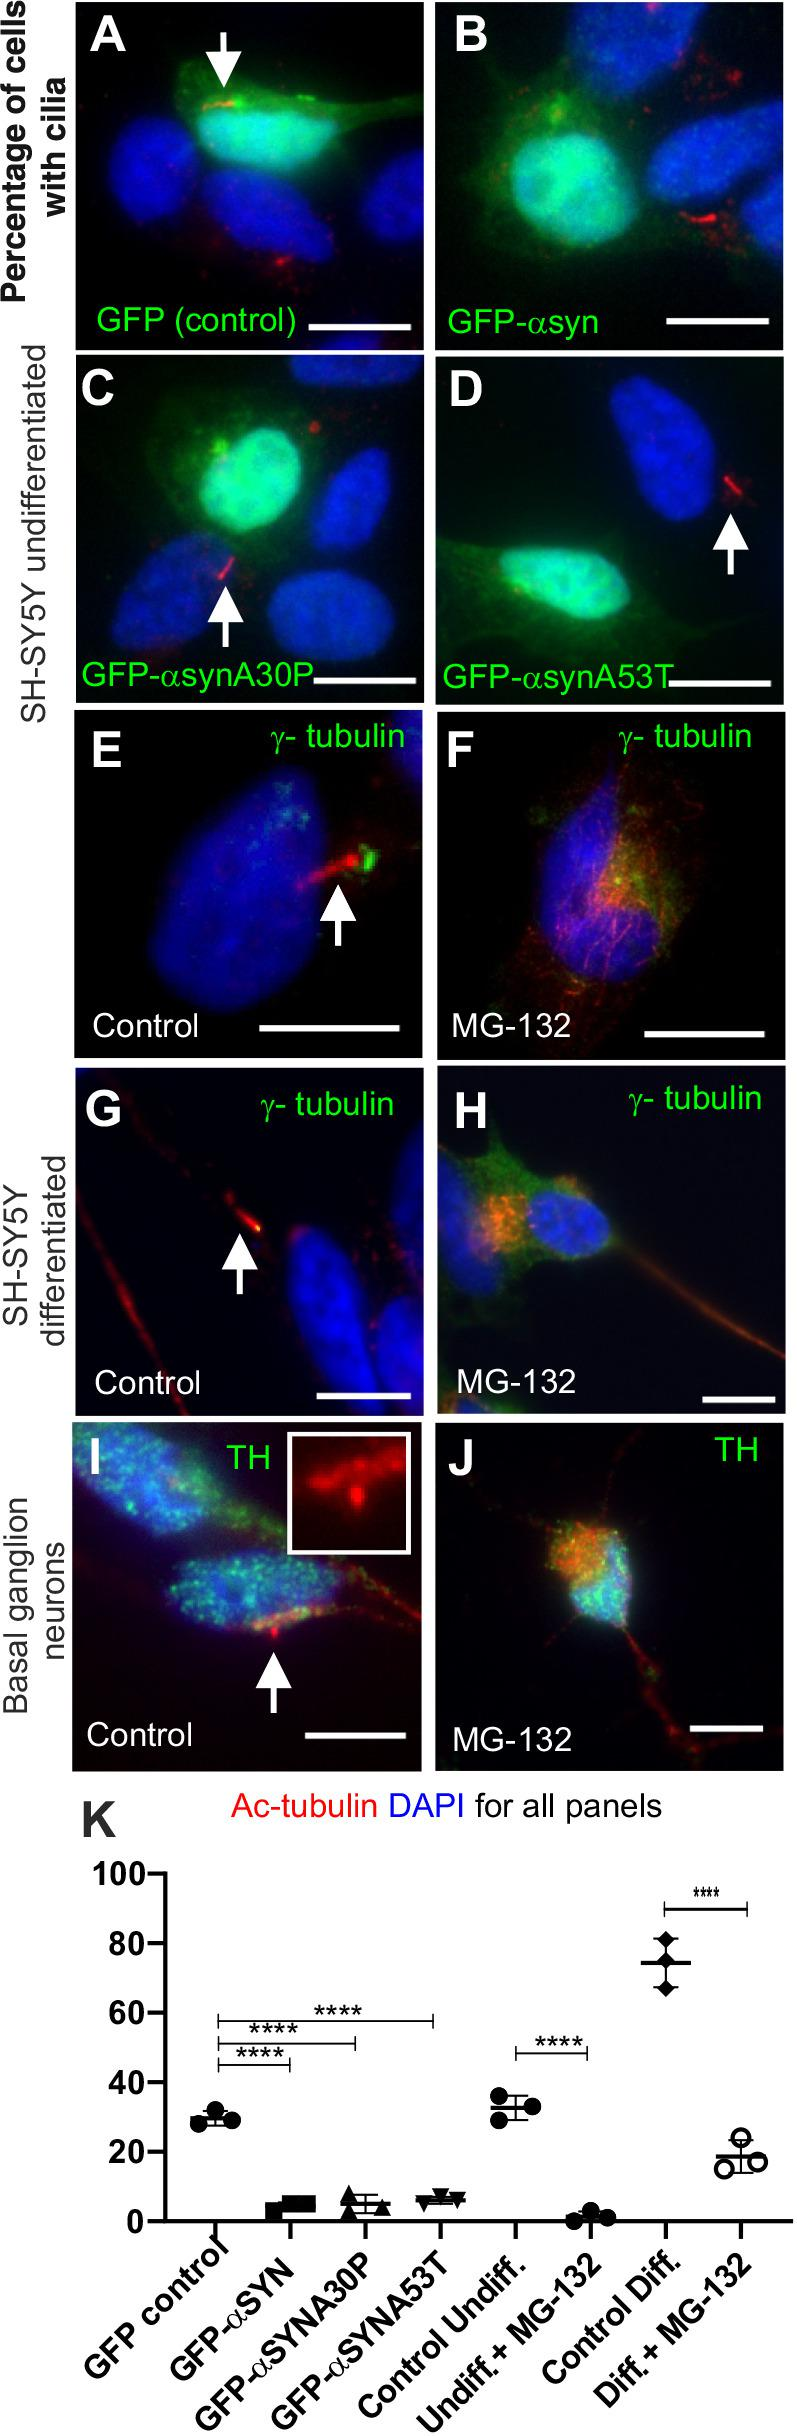 Aggresomes inhibit ciliogenesis. All panels: DNA/nuclei stained with DAPI (blue), green label is indicated in each panel, cilia (white arrows) can be identified by acetylated tubulin (red). (A–F) When transfected with a GFP-α-syn expression plasmid (α-syn and A30P and A53T familial mutants) or treated with MG132, cilia formation is inhibited in undifferentiated SH-SH5Y cells (B, C and D versus A, F versus E). In the presence of aggresomes differentiated SH-SY5Y cells are no longer able to form cilia (H versus G). When treated with MG132, TH-positive basal ganglion neurons are no longer able to form cilia (J versus I). The acetylated tubulin signal (red) in J and I is overexposed to ensure no cilia were missed. (K) Quantification of ciliation: GFP expressing versus GFP-α-syn expression, ( P =0.0003, by one-way ANOVA, 100 cells, n =3); undifferentiated SH-SY5Y, untreated versus MG132, ( P =0.0001, by Student's t -test, 100 cell, n =3); differentiated SH-SY5Y, untreated versus MG132, ( P =0.0001 by Student's t -test, 100 cells counted, n =3). Scale bars: 10 μM.